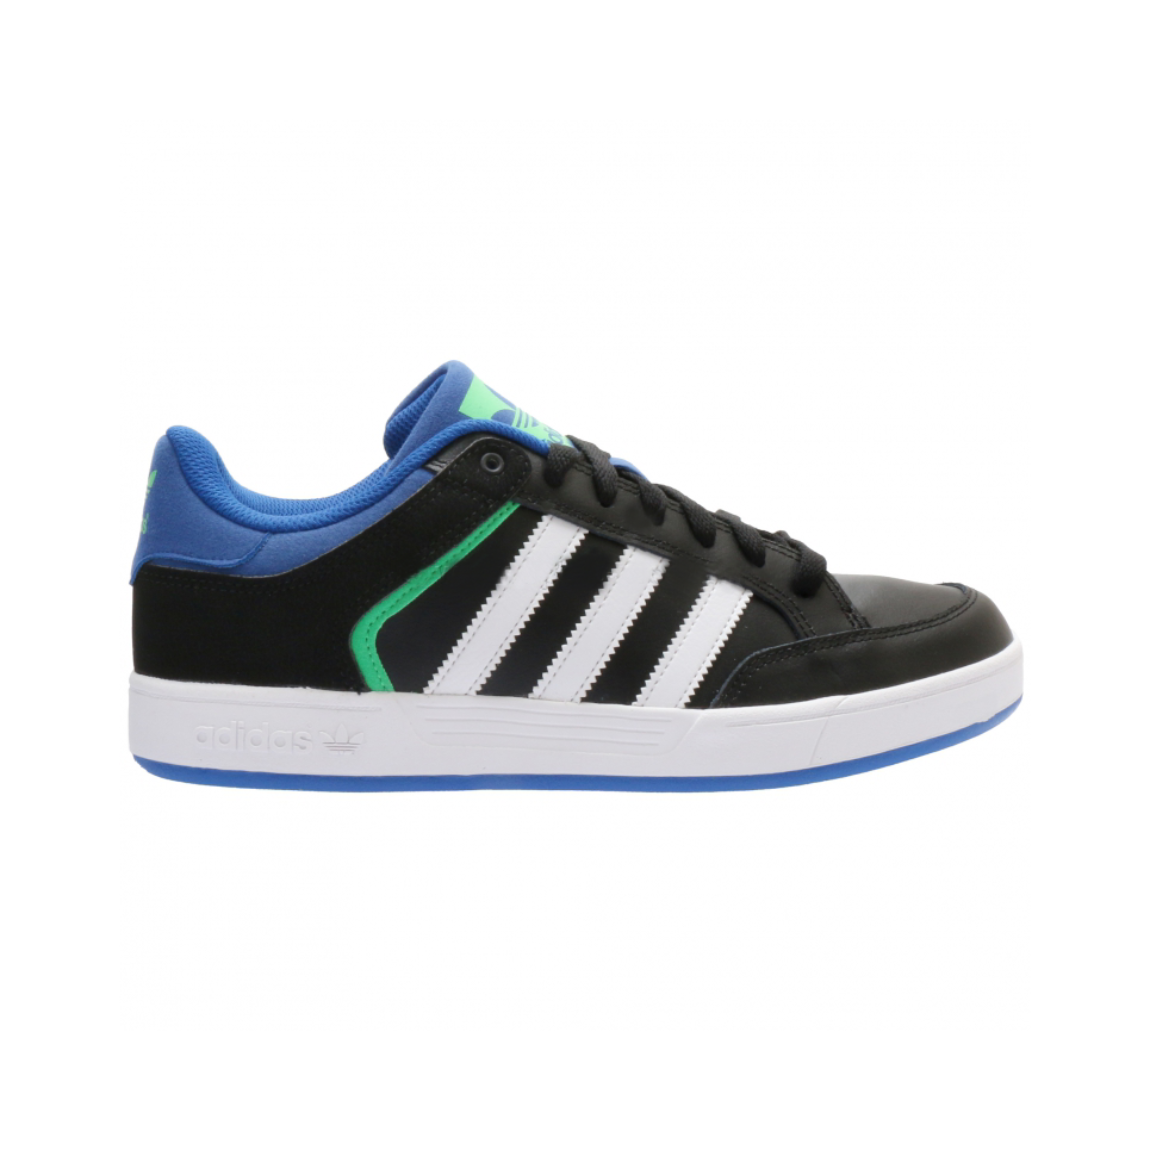 ADIDAS VARIAL LOW Core Black Collegiate Royal Flash Lime.